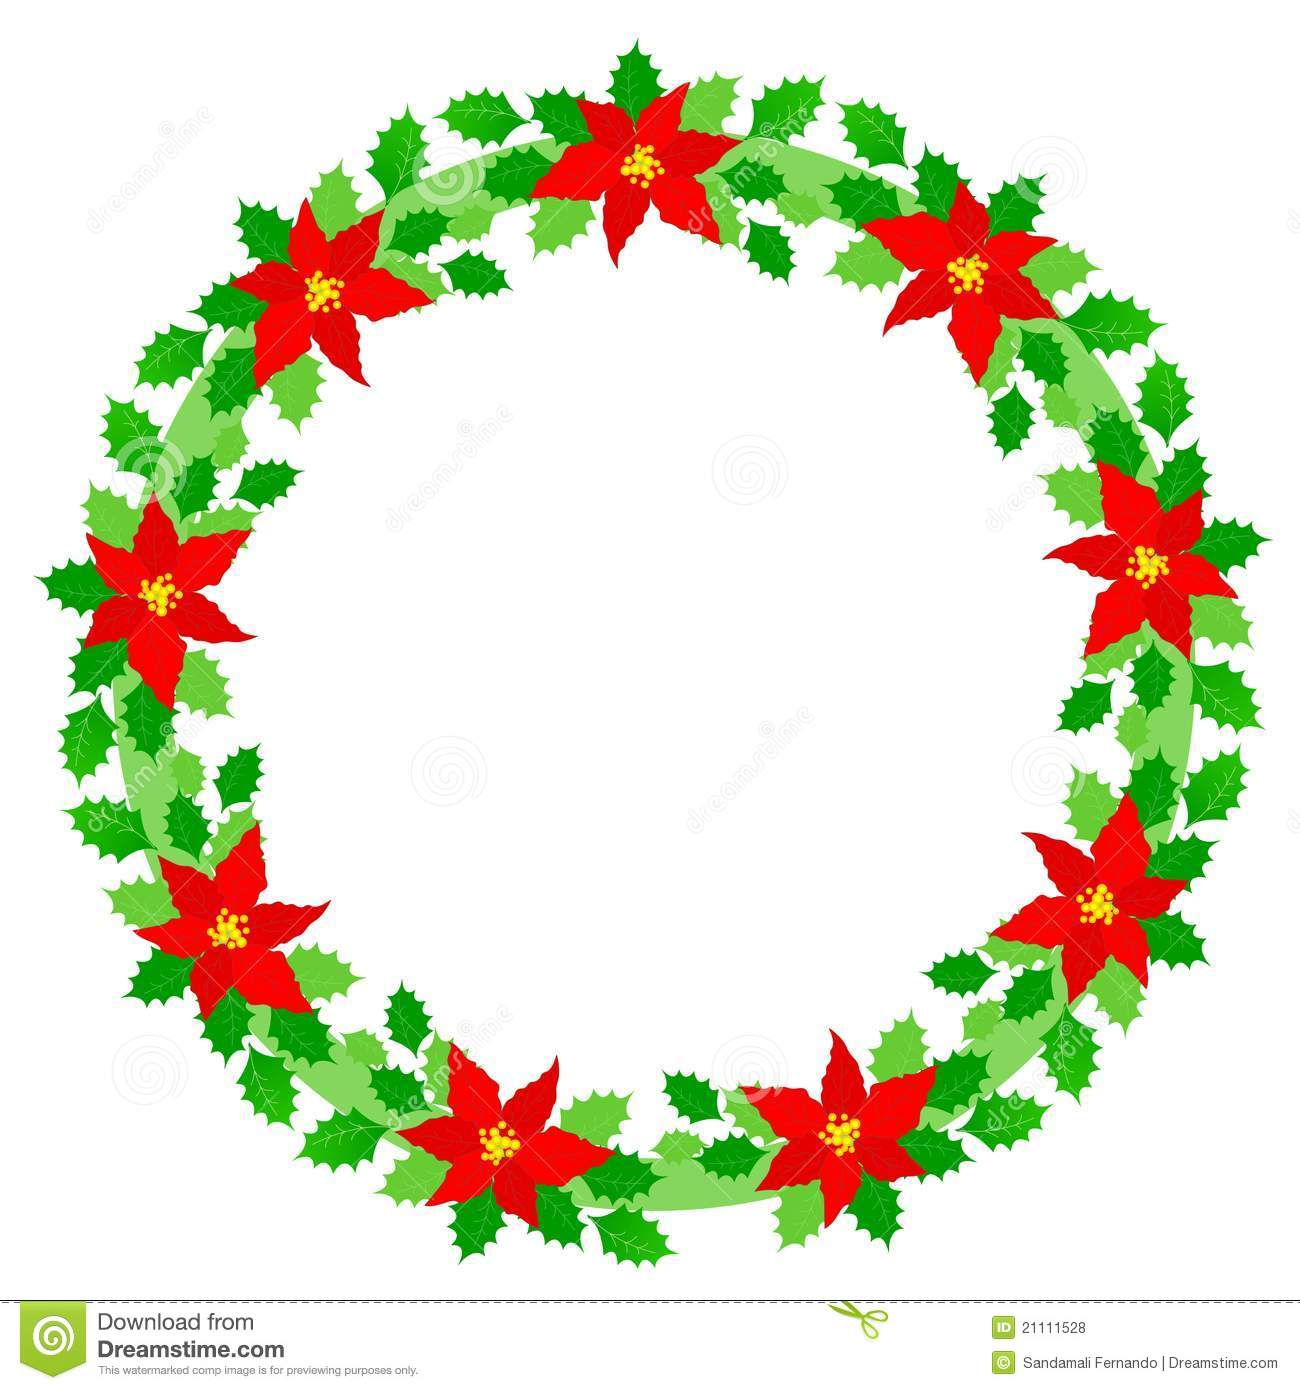 Beautiful Christmas wreath / border with colorful holly, berries and ...